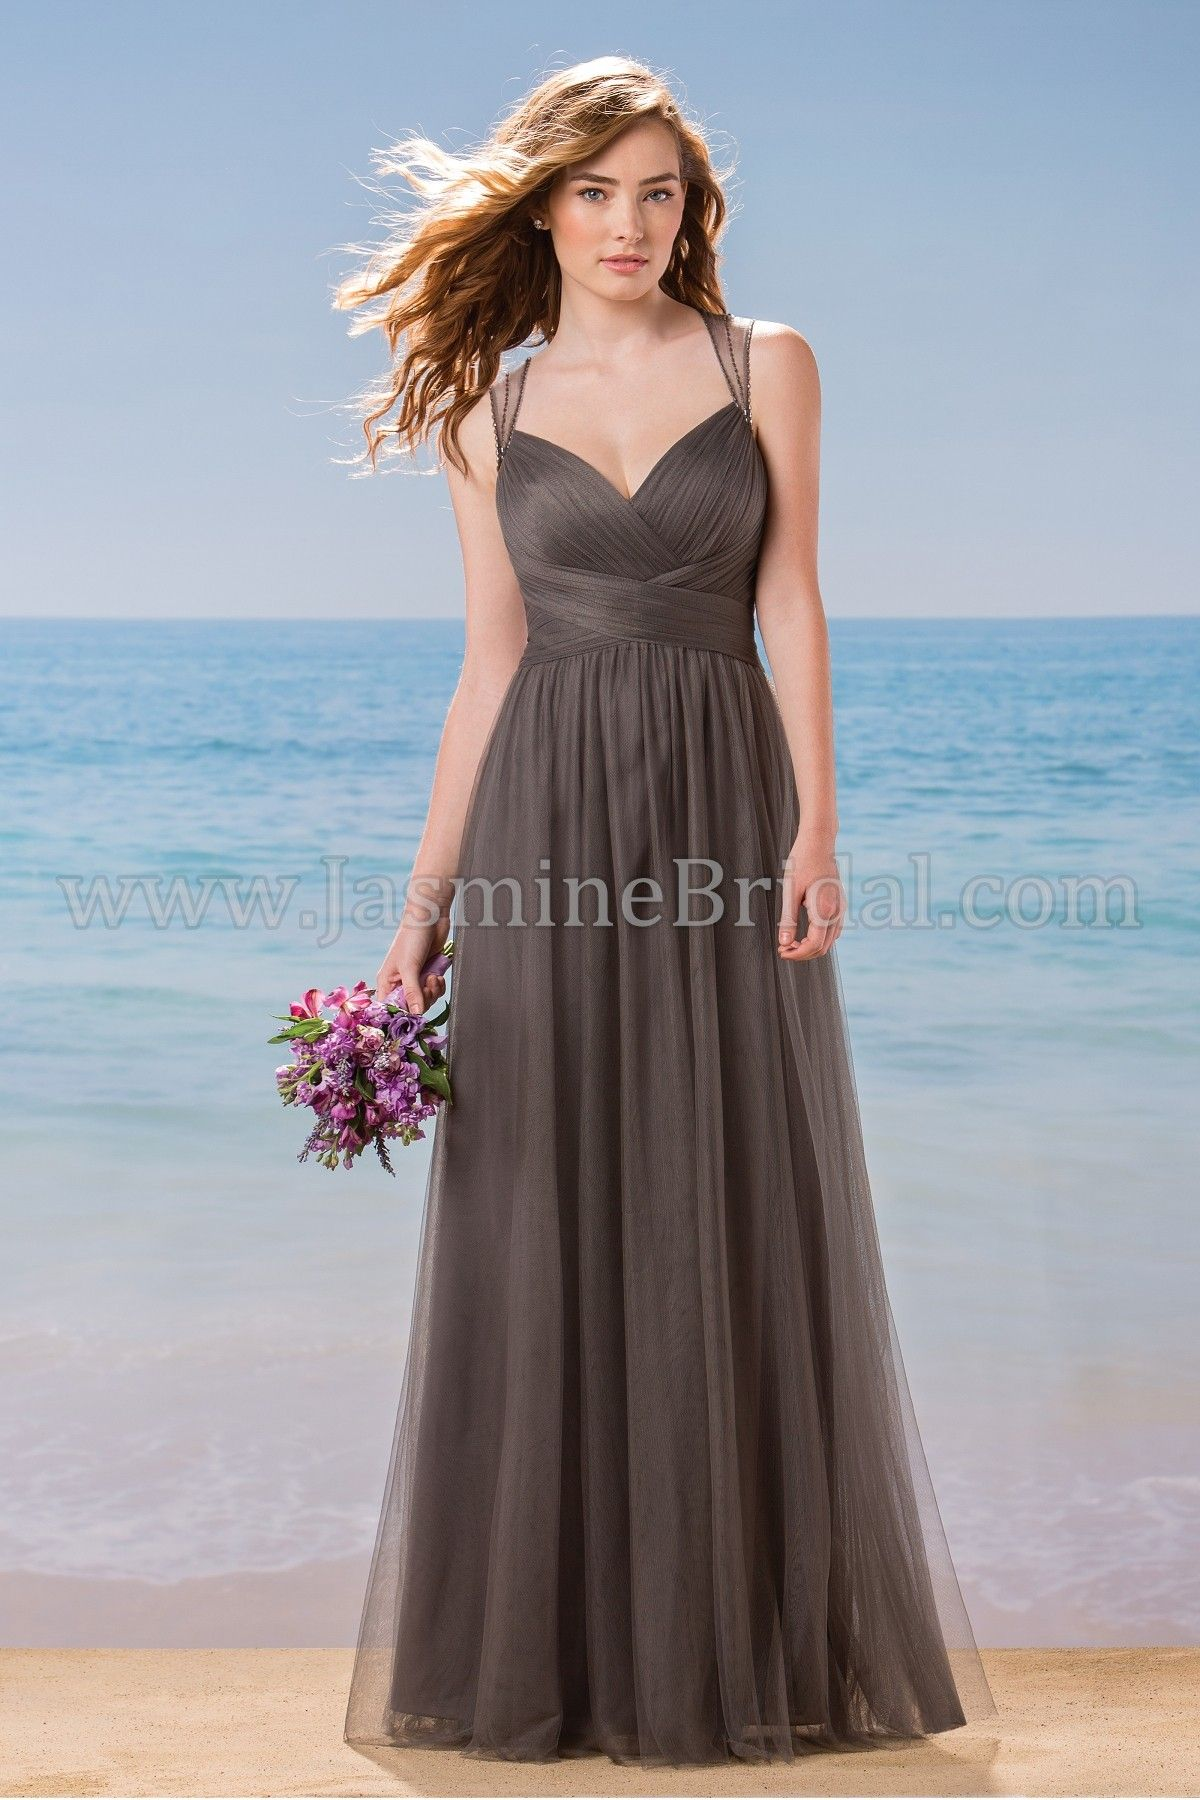 Jasmine bridal bridesmaid dress belsoie style l184002 in iron jasmine bridal bridesmaid dress belsoie style l184002 in iron ombrellifo Images